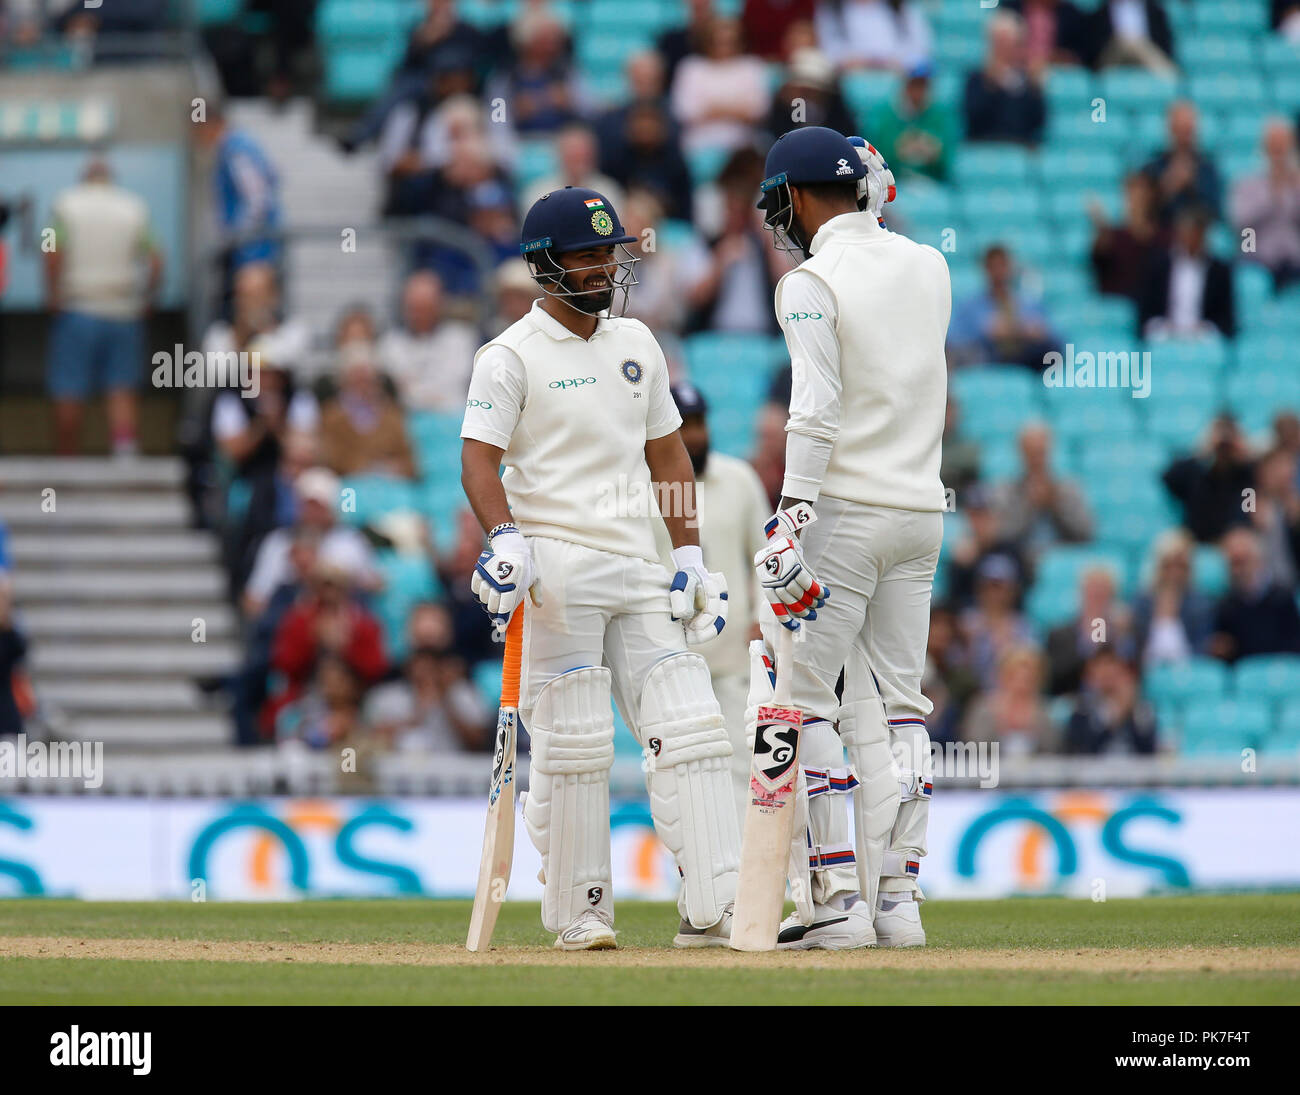 Kia Oval, London, UK. 11th Sep, 2018. Specsavers International Test Match Cricket, 5th test, day 5; Rishabh Pant of India is congratulated by KL Rahul after he reaches his half century Credit: Action Plus Sports/Alamy Live News - Stock Image